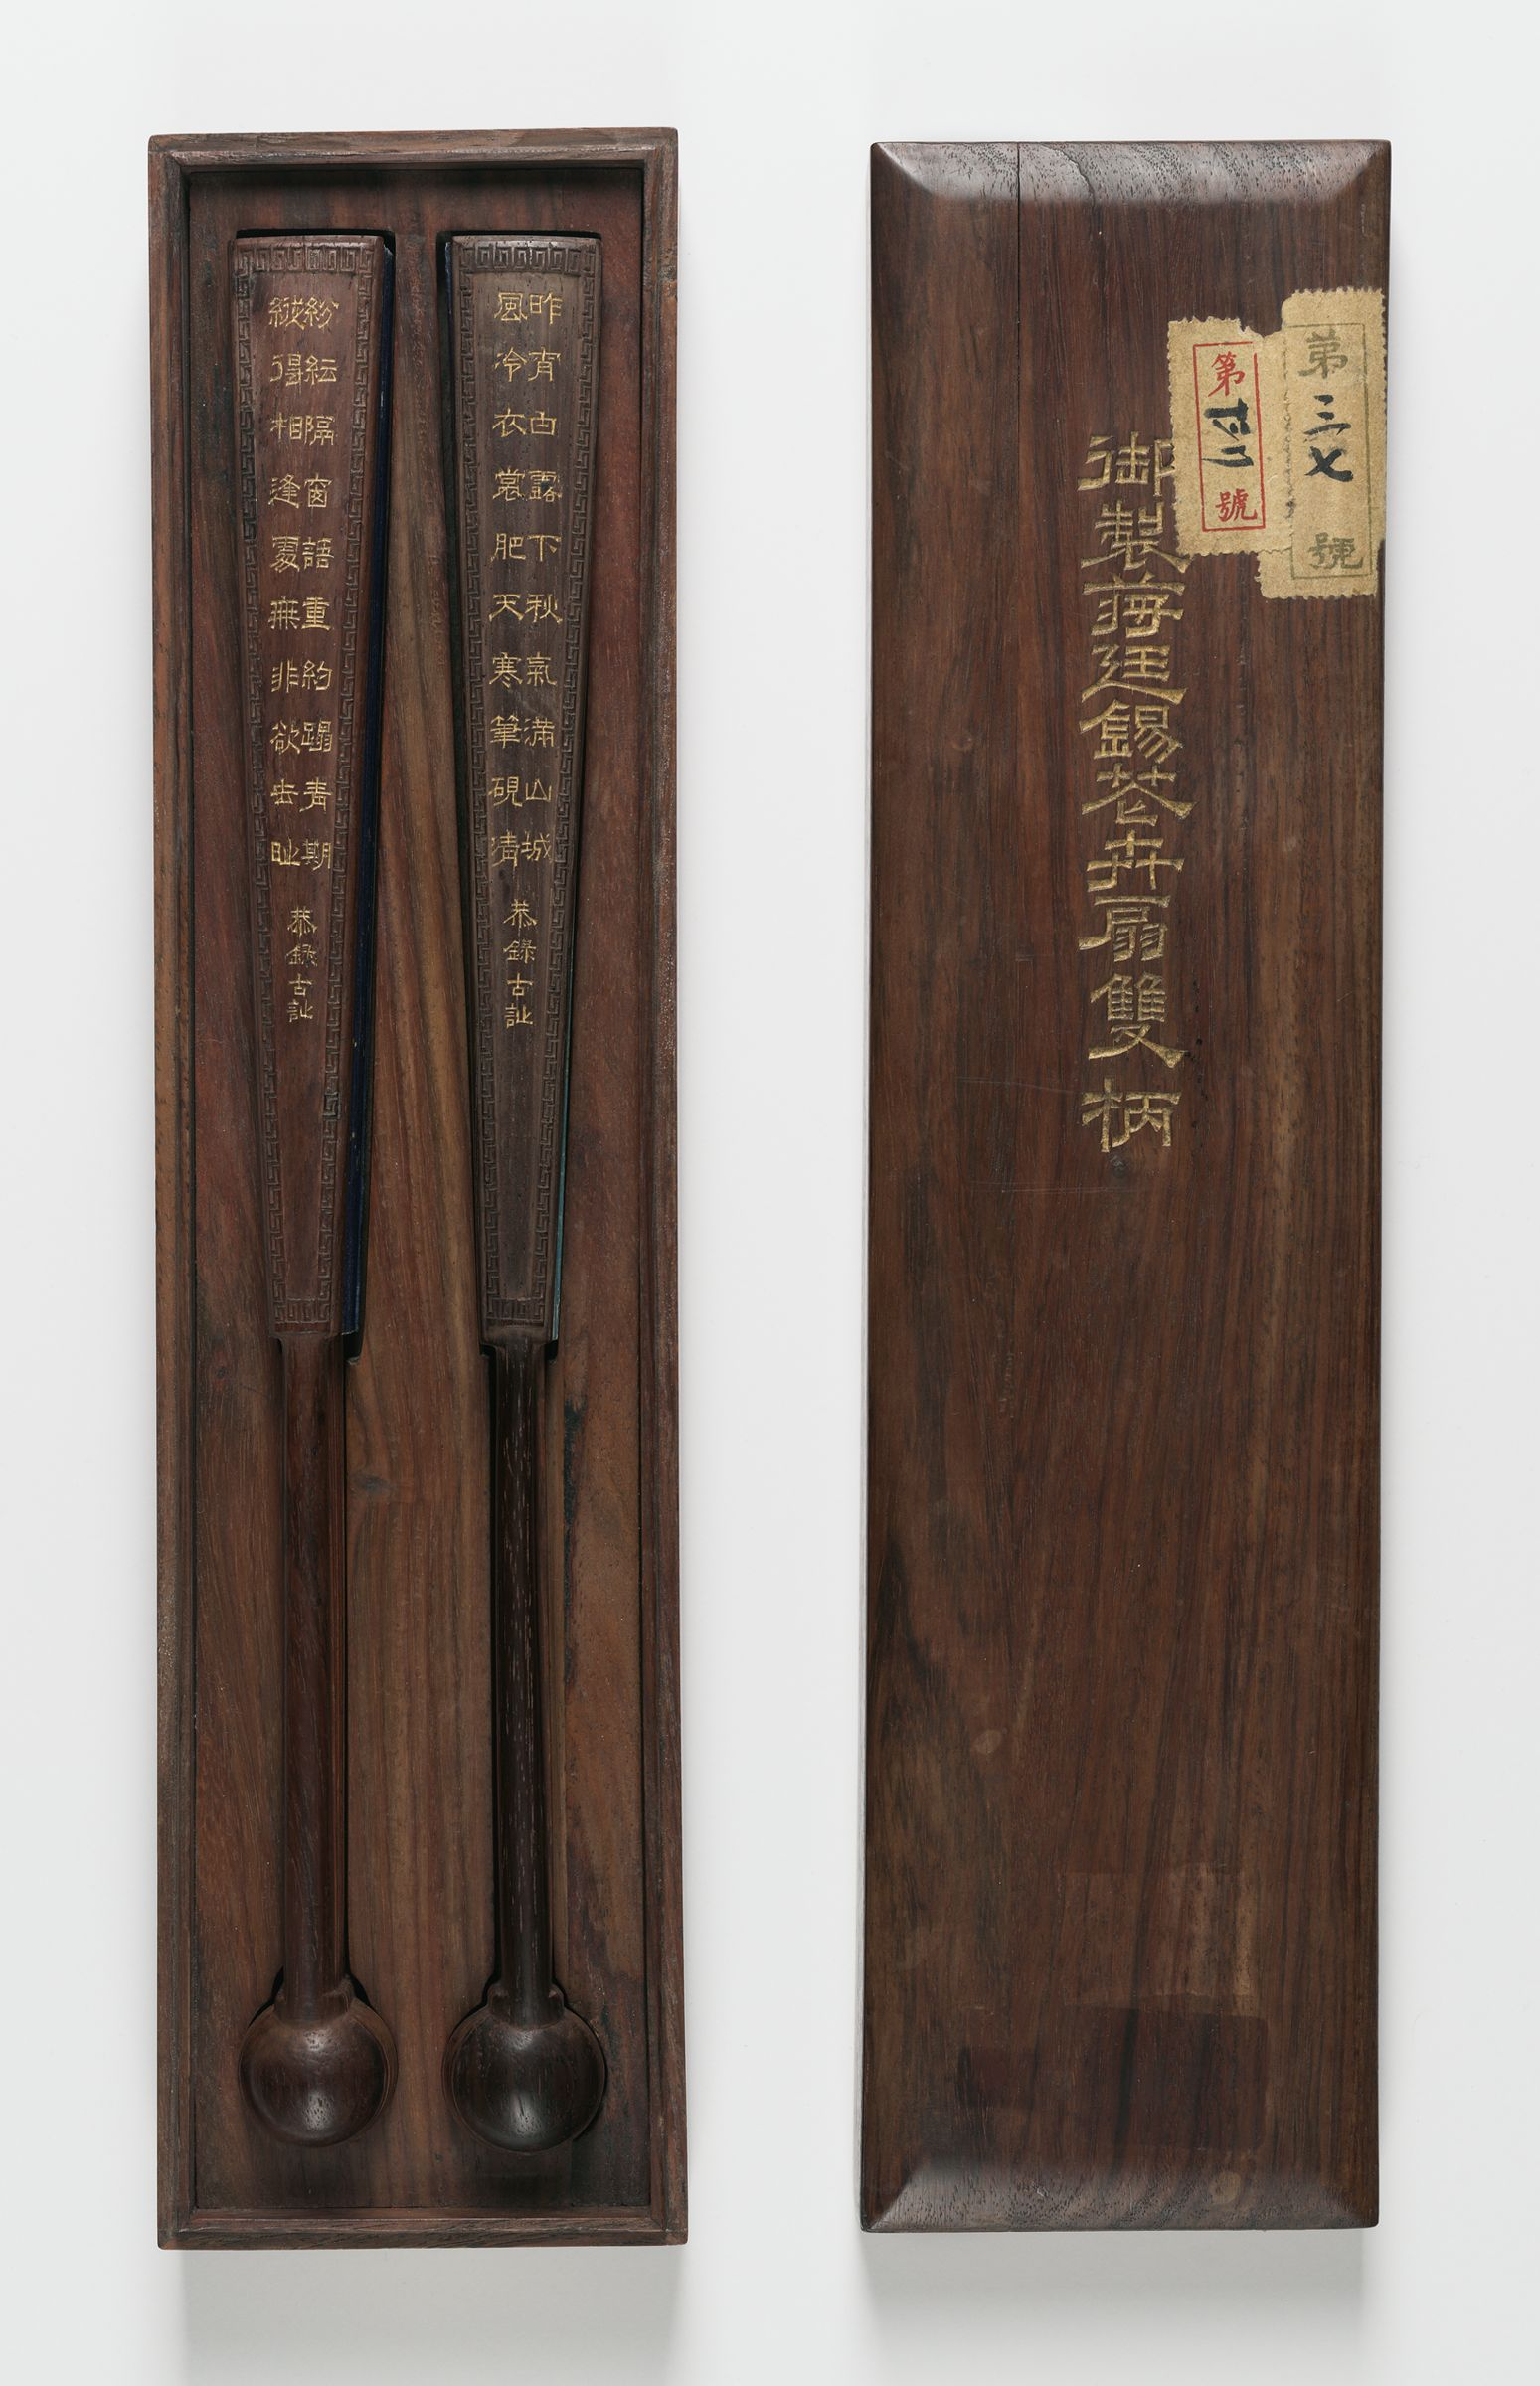 Pair Of Folding Fans With Paintings By Jiang Tingxi And Calligraphy By Wang Youdun